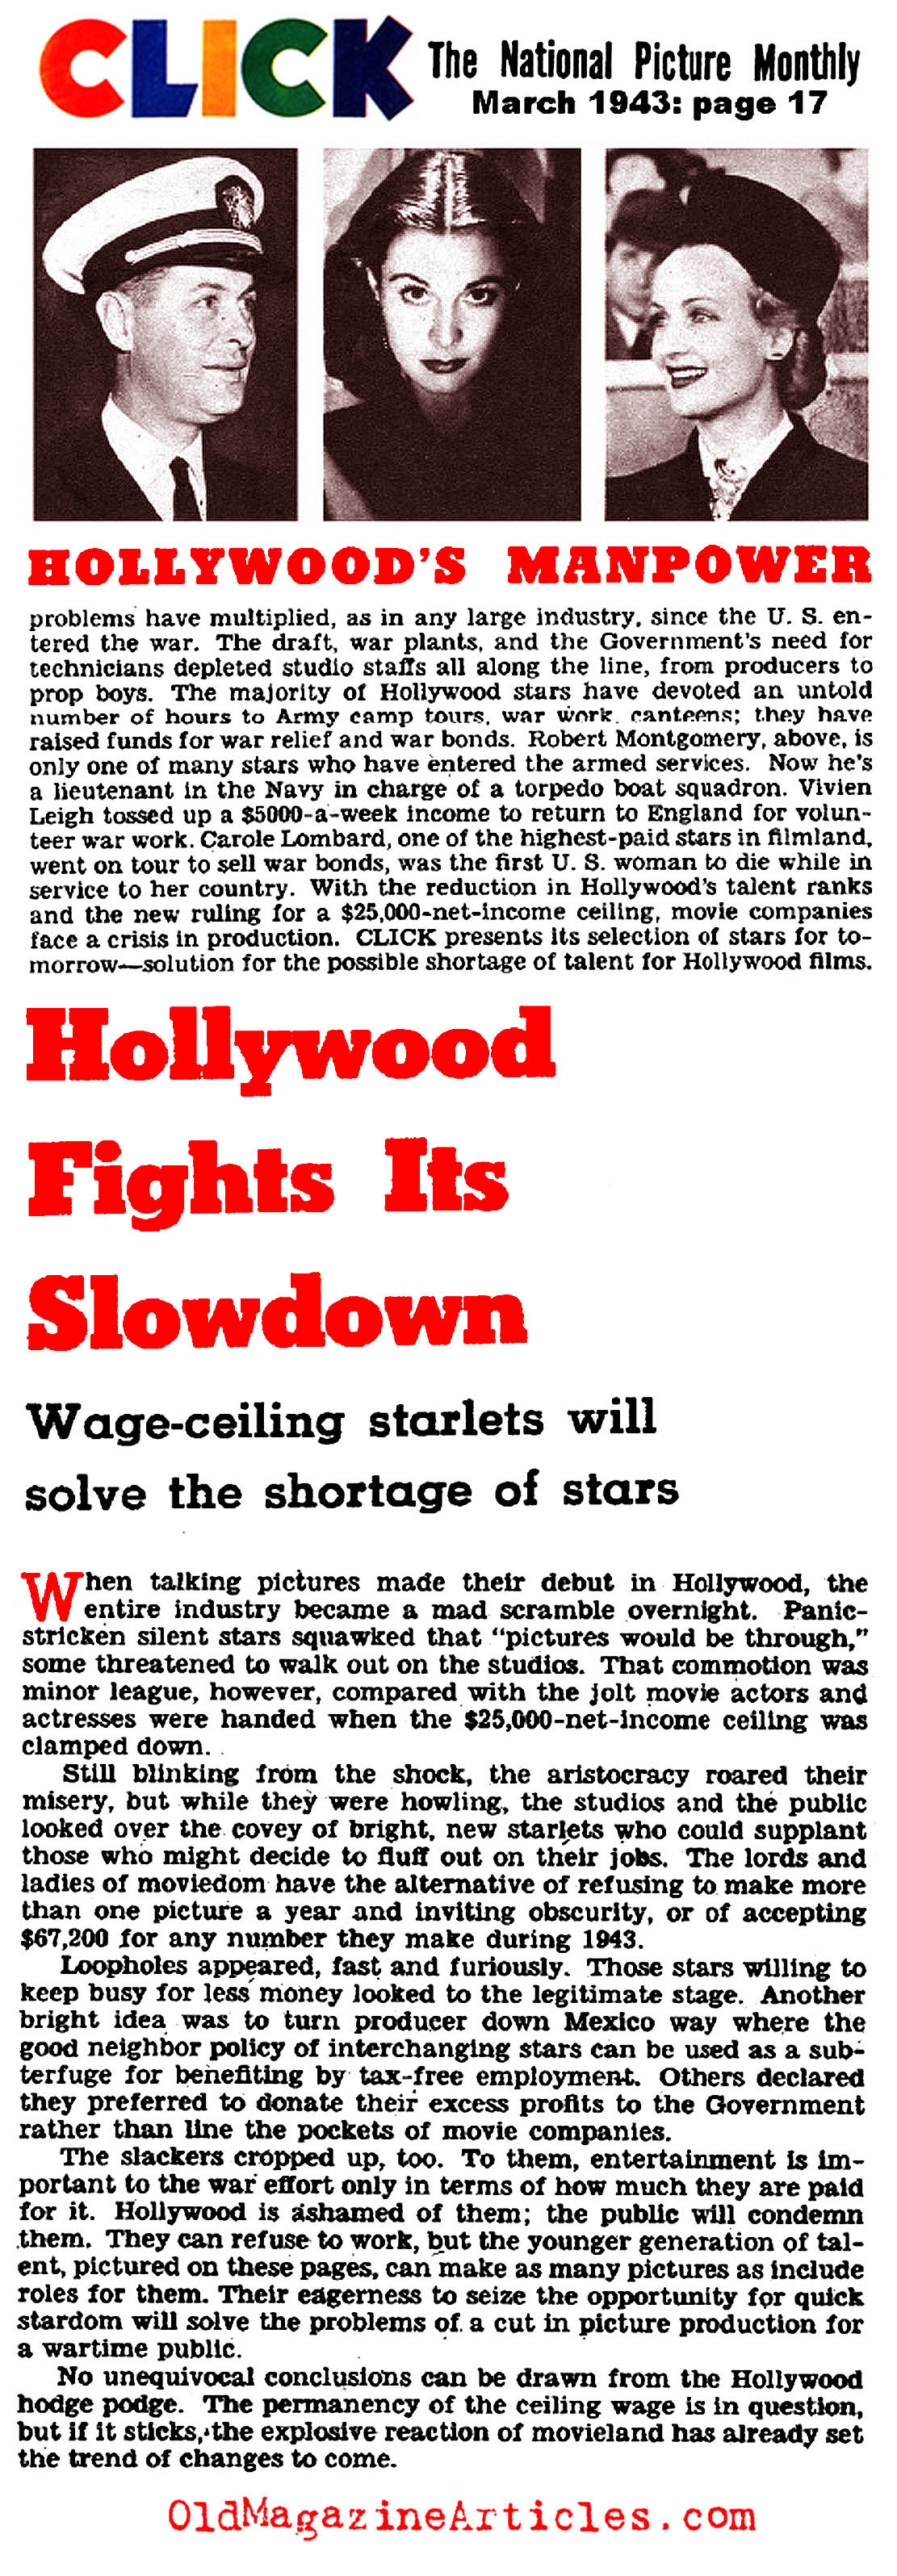 Hollywood Fights Its Slowdown (Click Magazine, 1943)